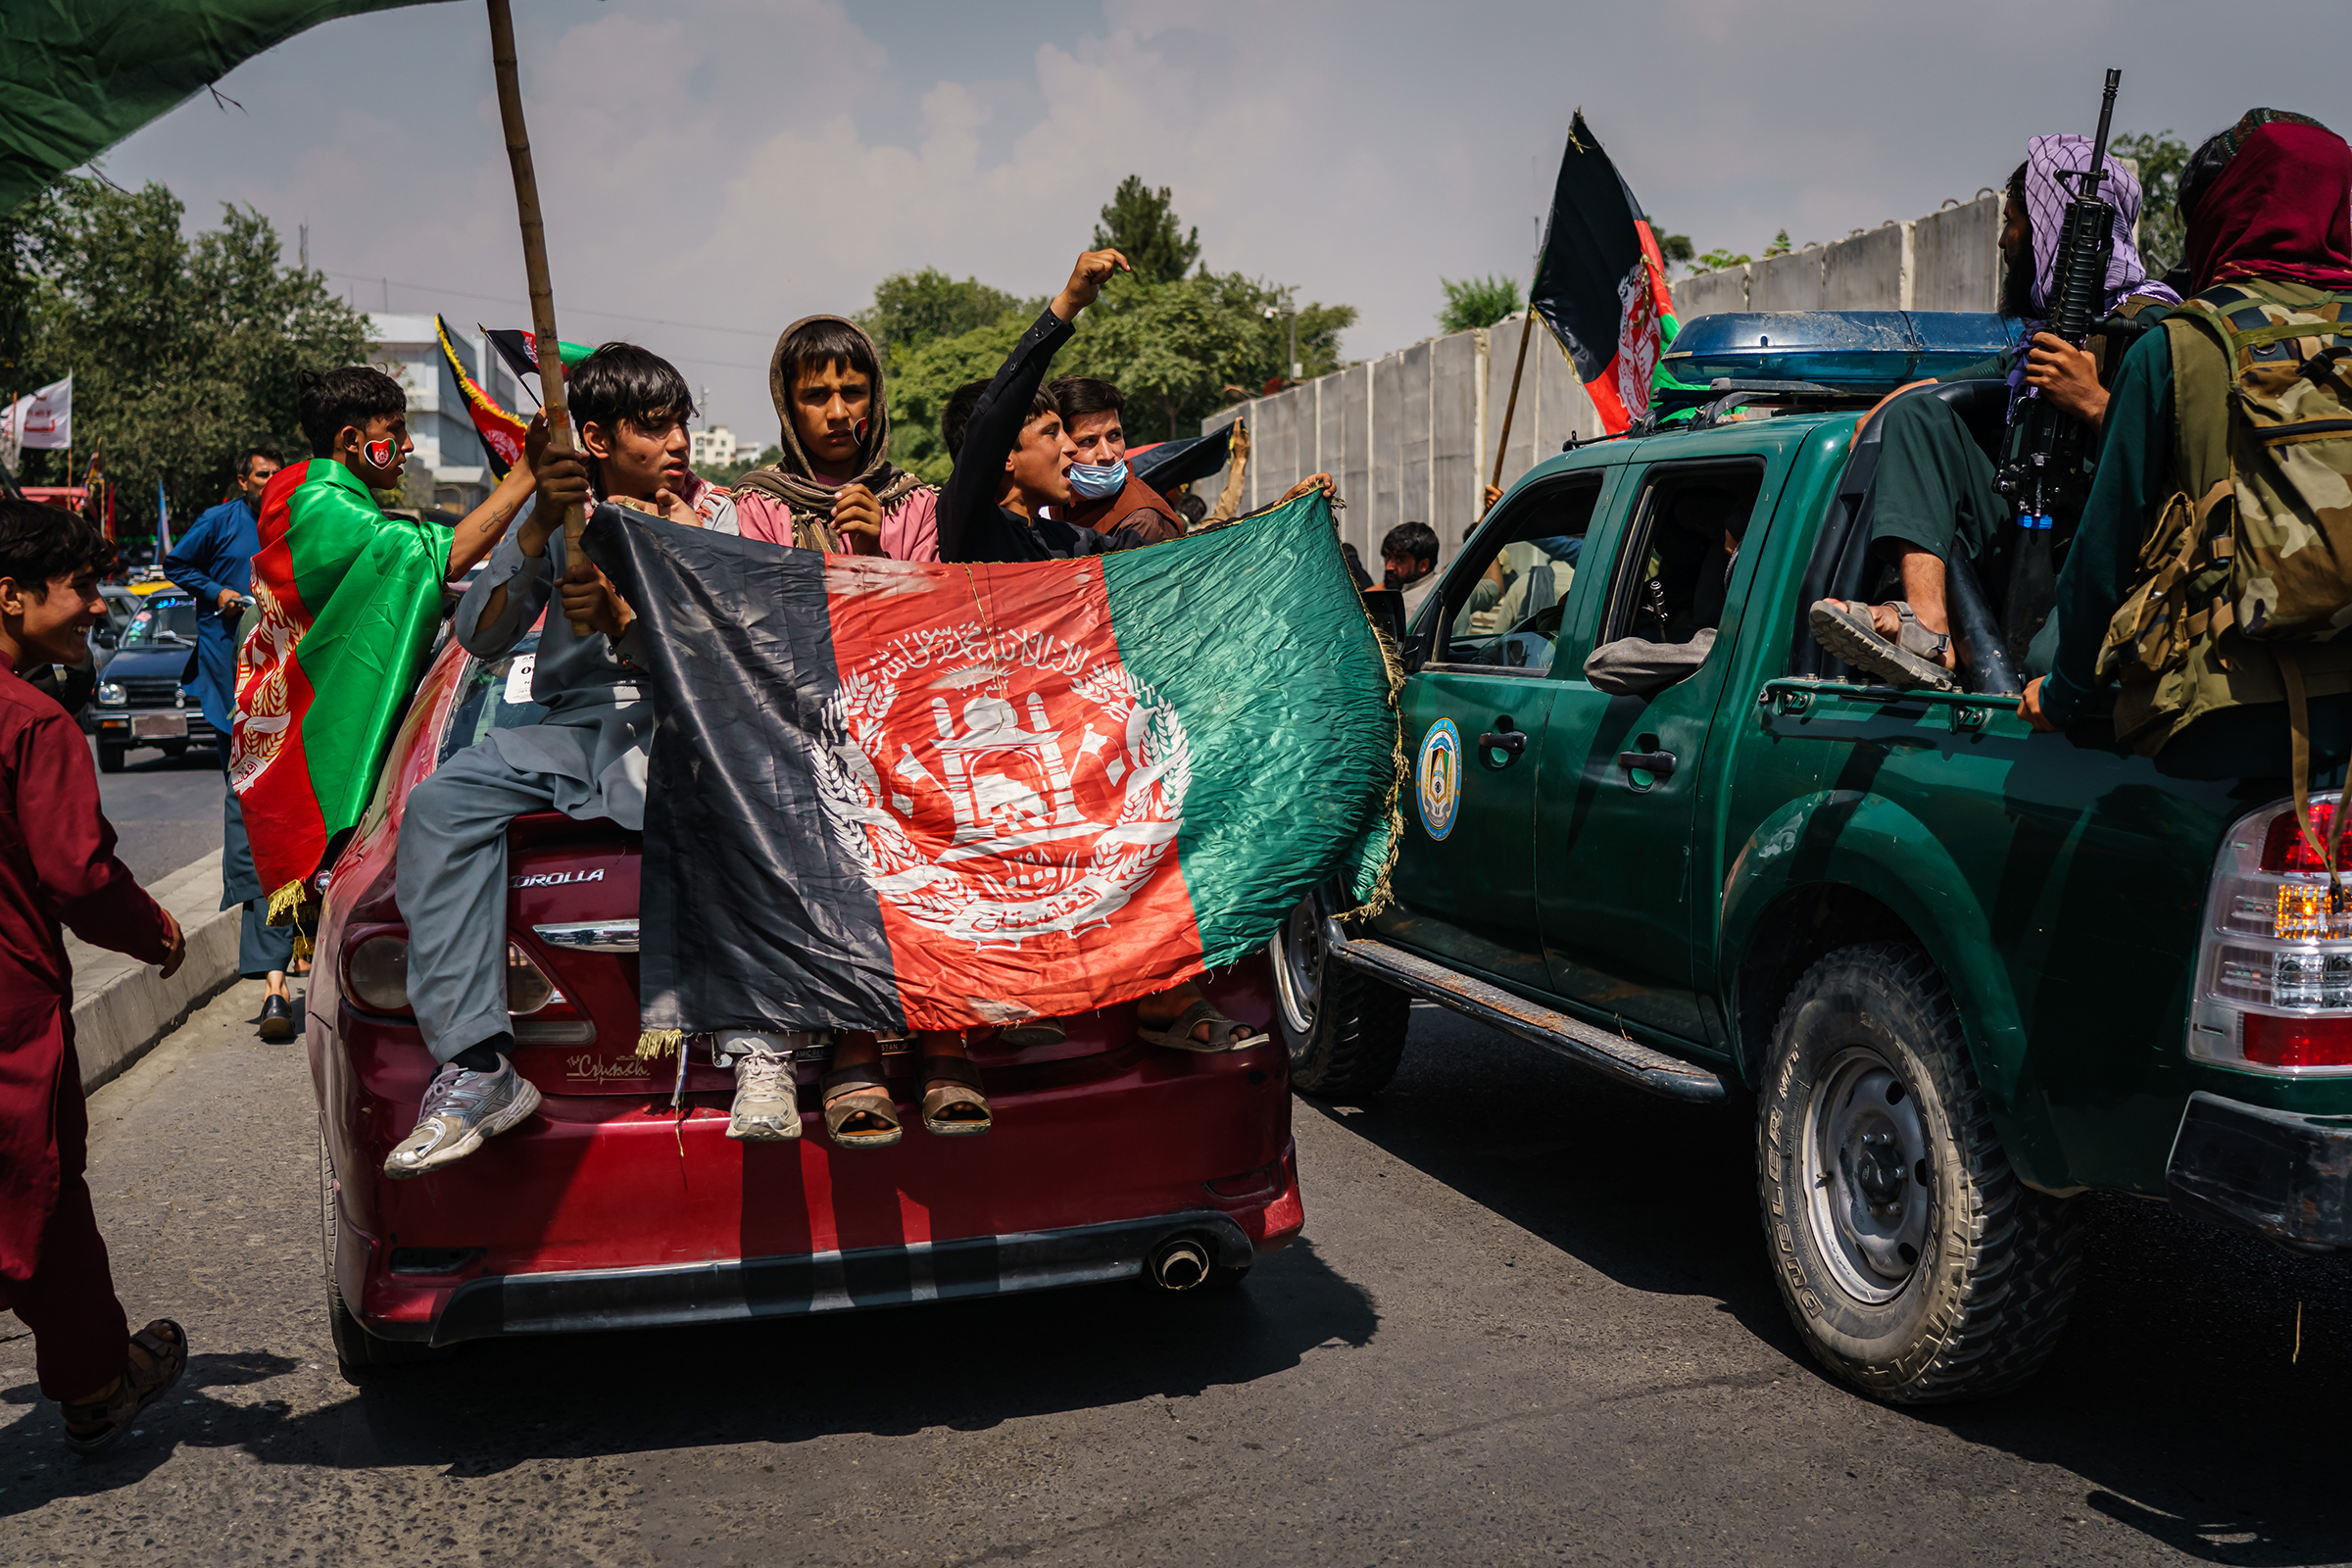 Afghans march while carrying banners and the flag of the Islamic Republic of Afghanistan, despite the presence of Taliban fighters, in Kabul on Aug. 19.